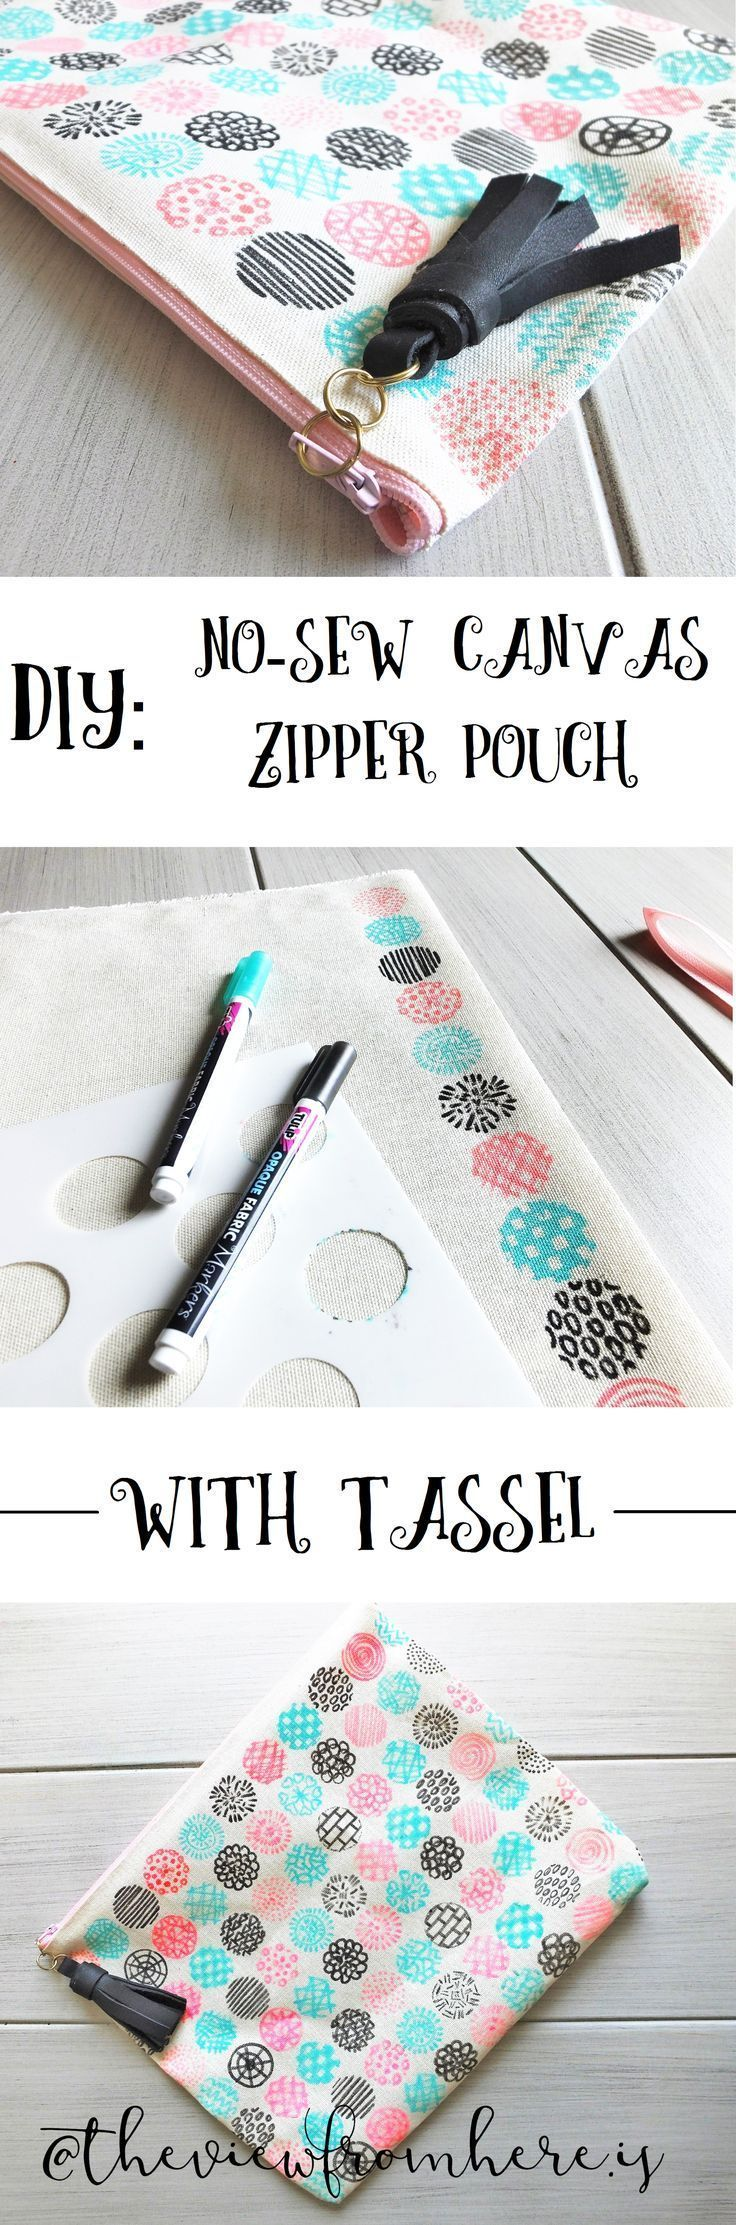 DIY: No-Sew Canvas Zipper Pouch with Tassel || http://theviewfromhere.is